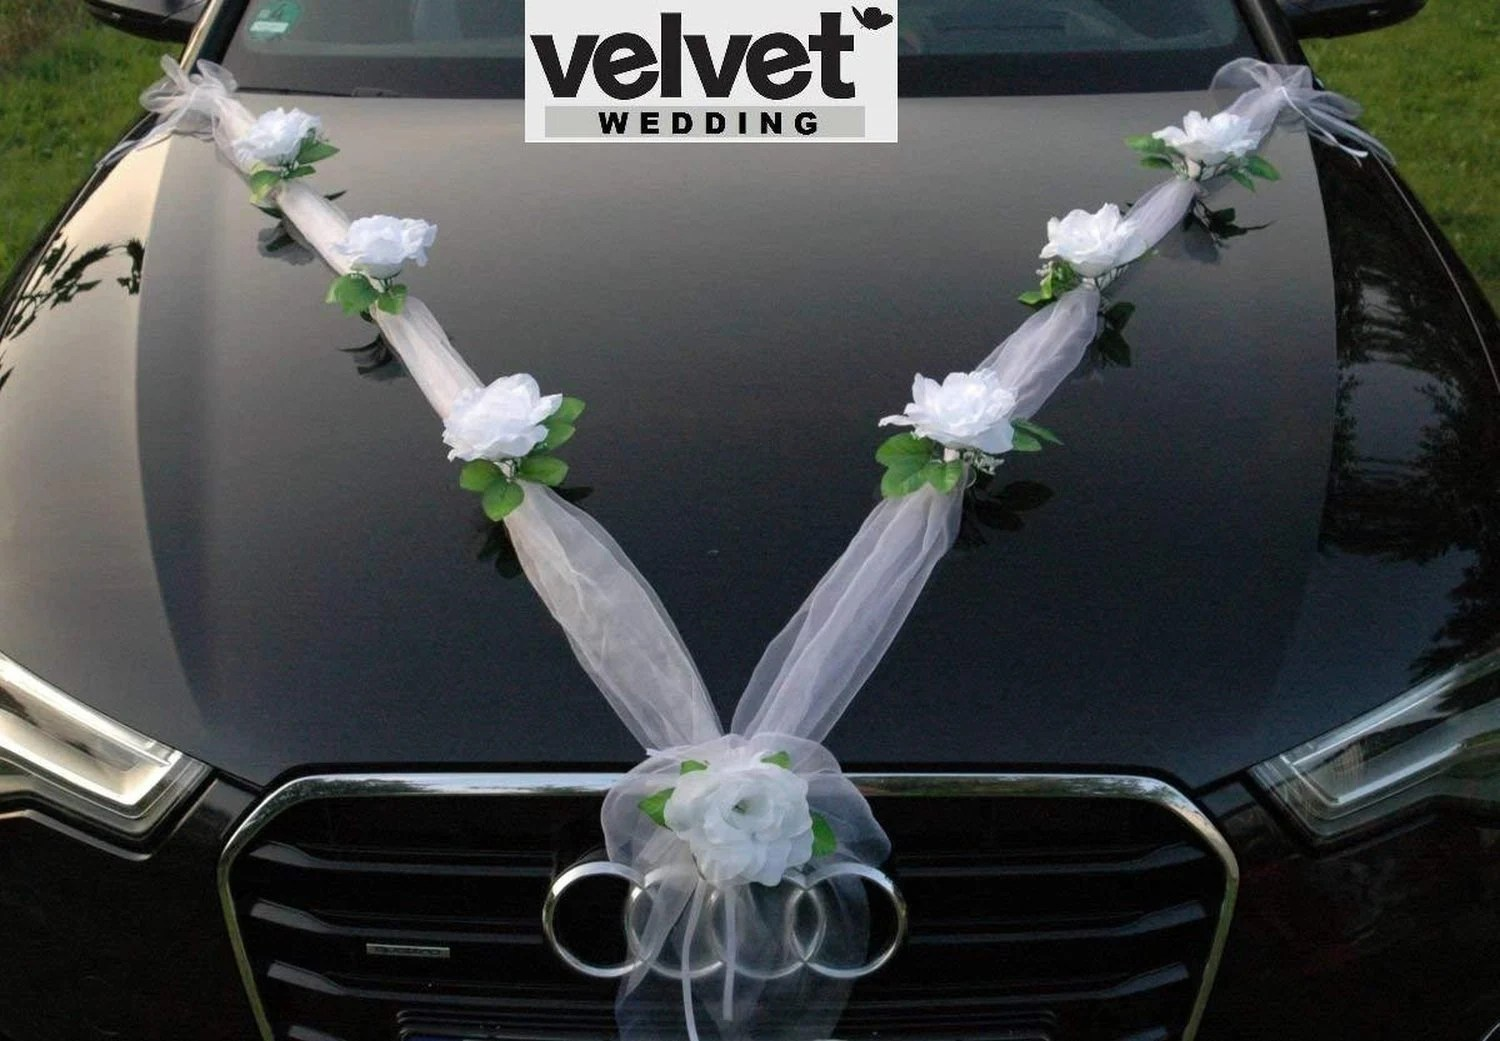 Car Decoration Weding Wedding Car Decoration Kit Set White Roses Organza Only Now Free Ribbon Bows For Doors